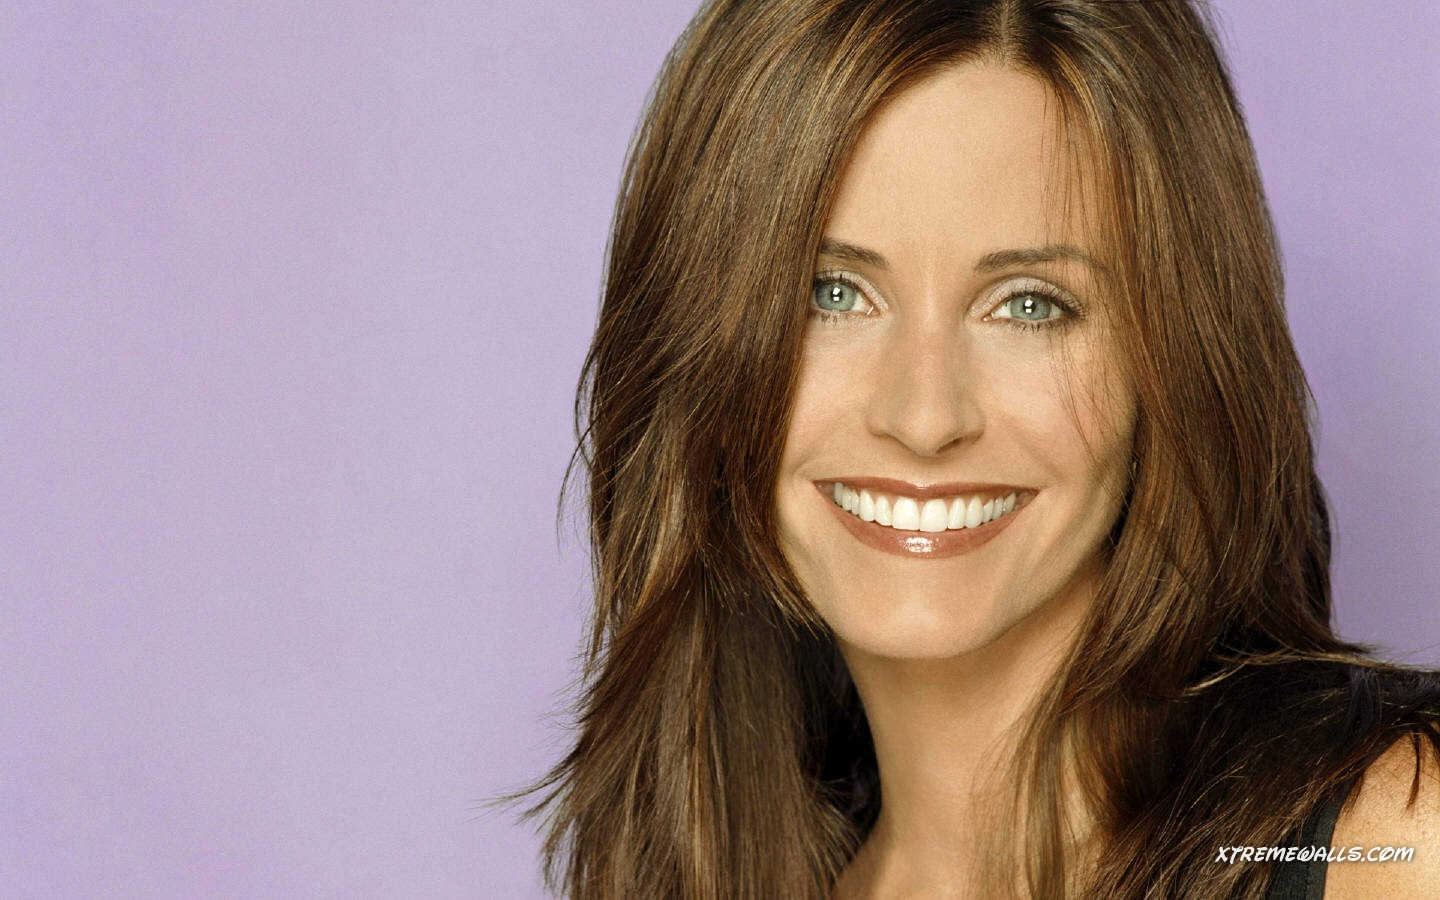 Although Courteney Cox has admitted in the past to dabbling in Botox